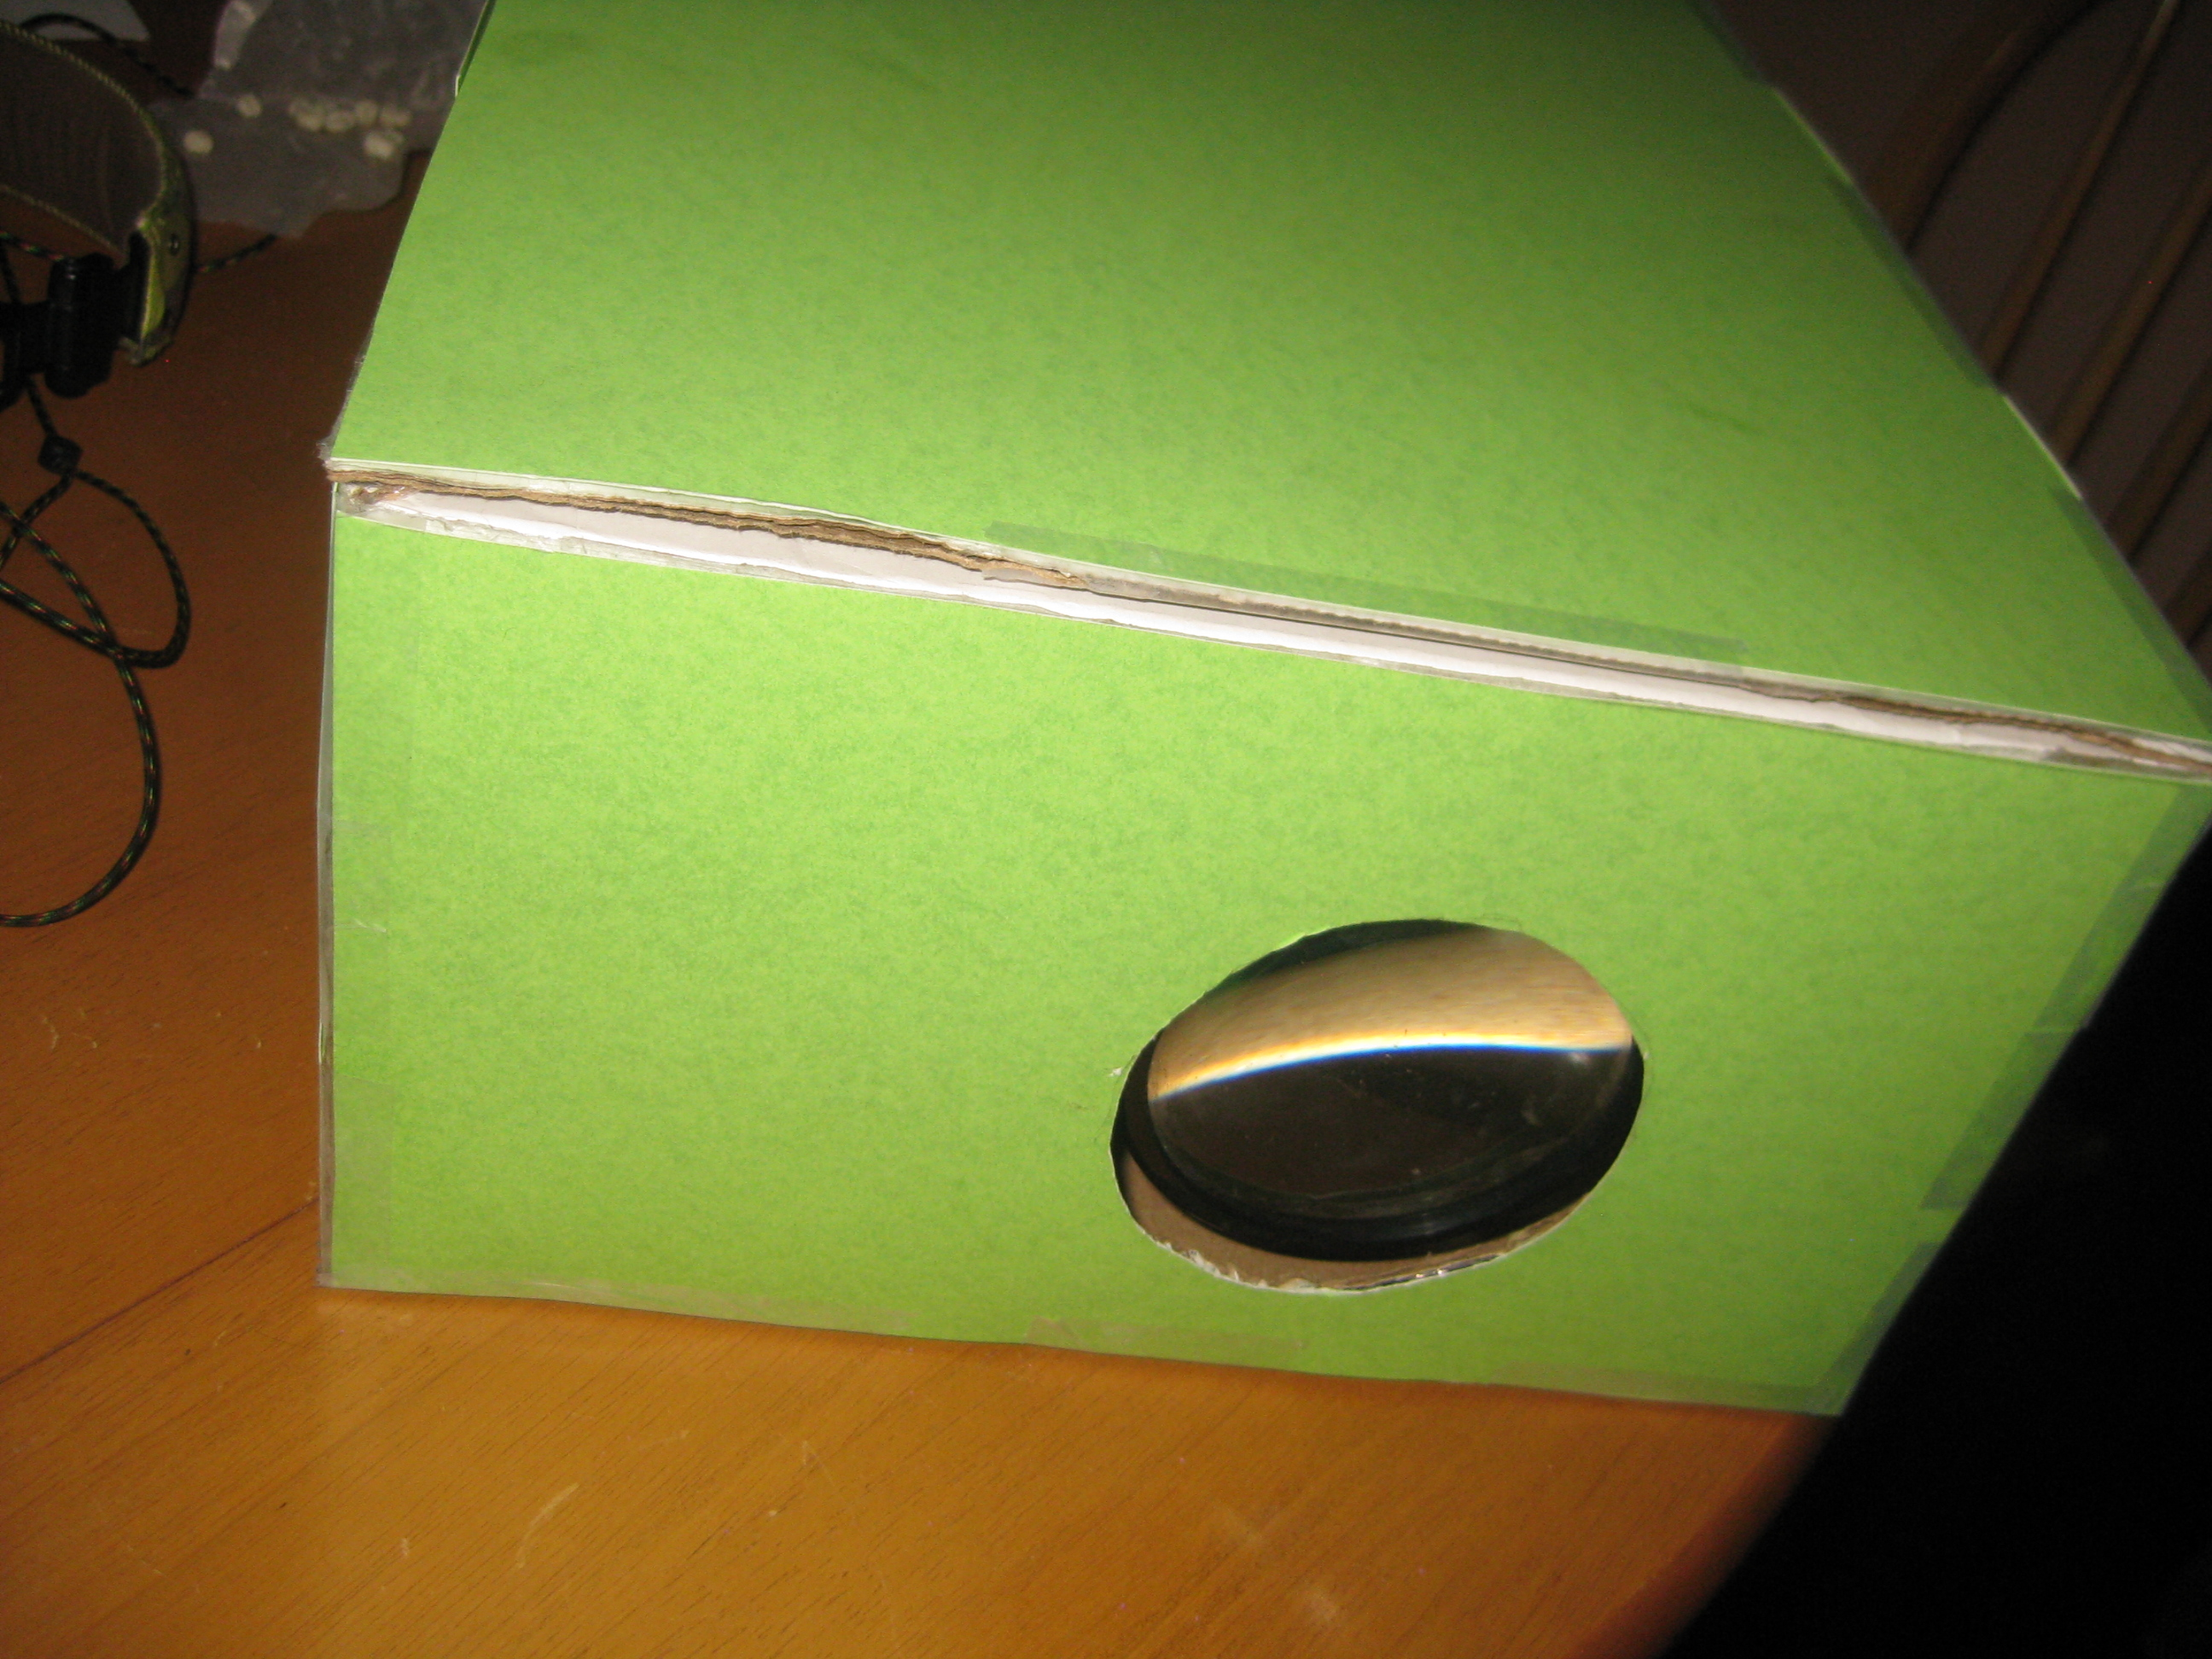 How to Make a Shoebox iPhone/iPod Projector (WITH TEST VIDEO)